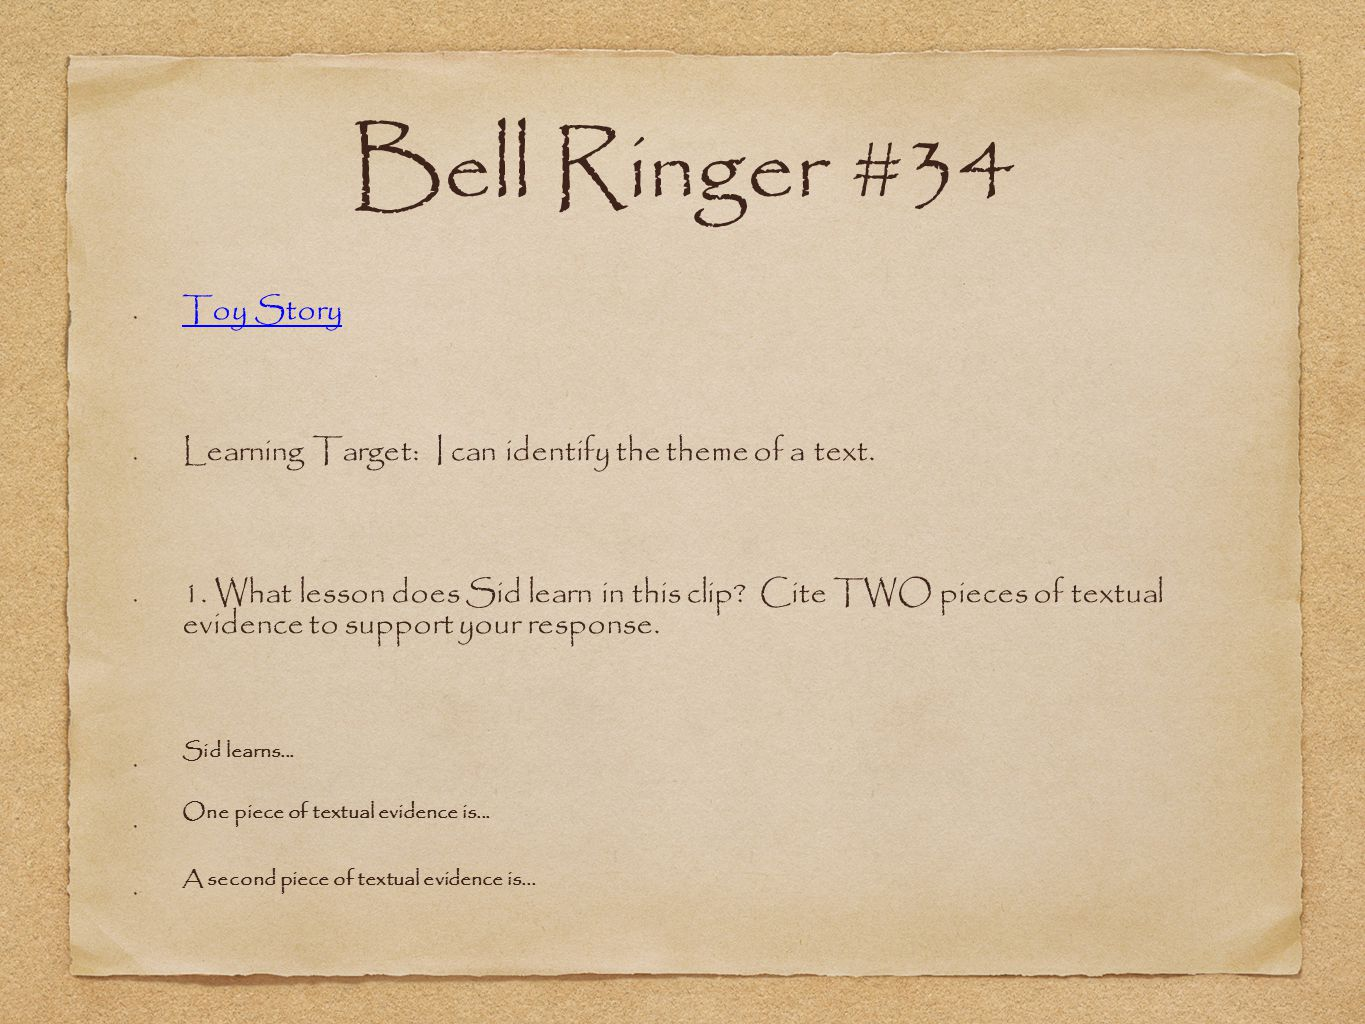 Bell Ringer #34 Toy Story Learning Target: I can identify the theme of a text.